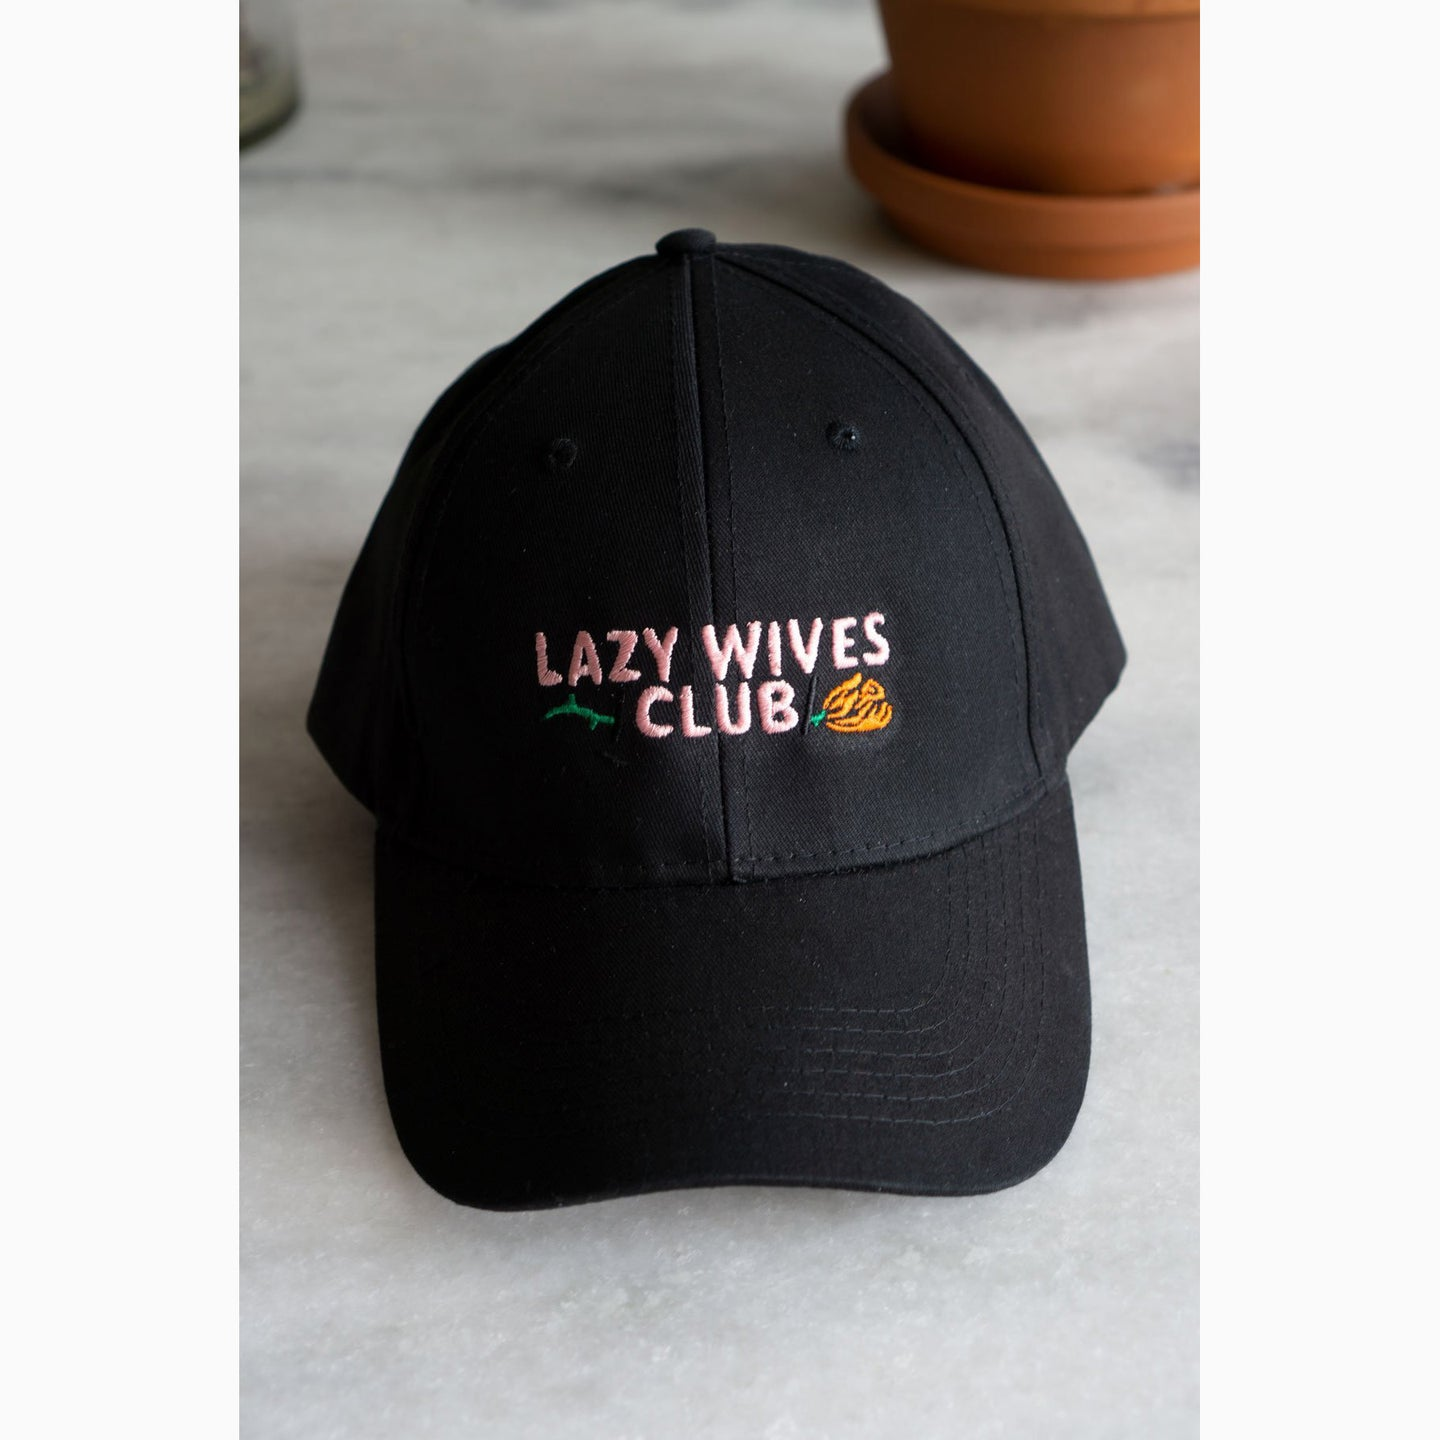 Lazy Wives Club Baseball Cap